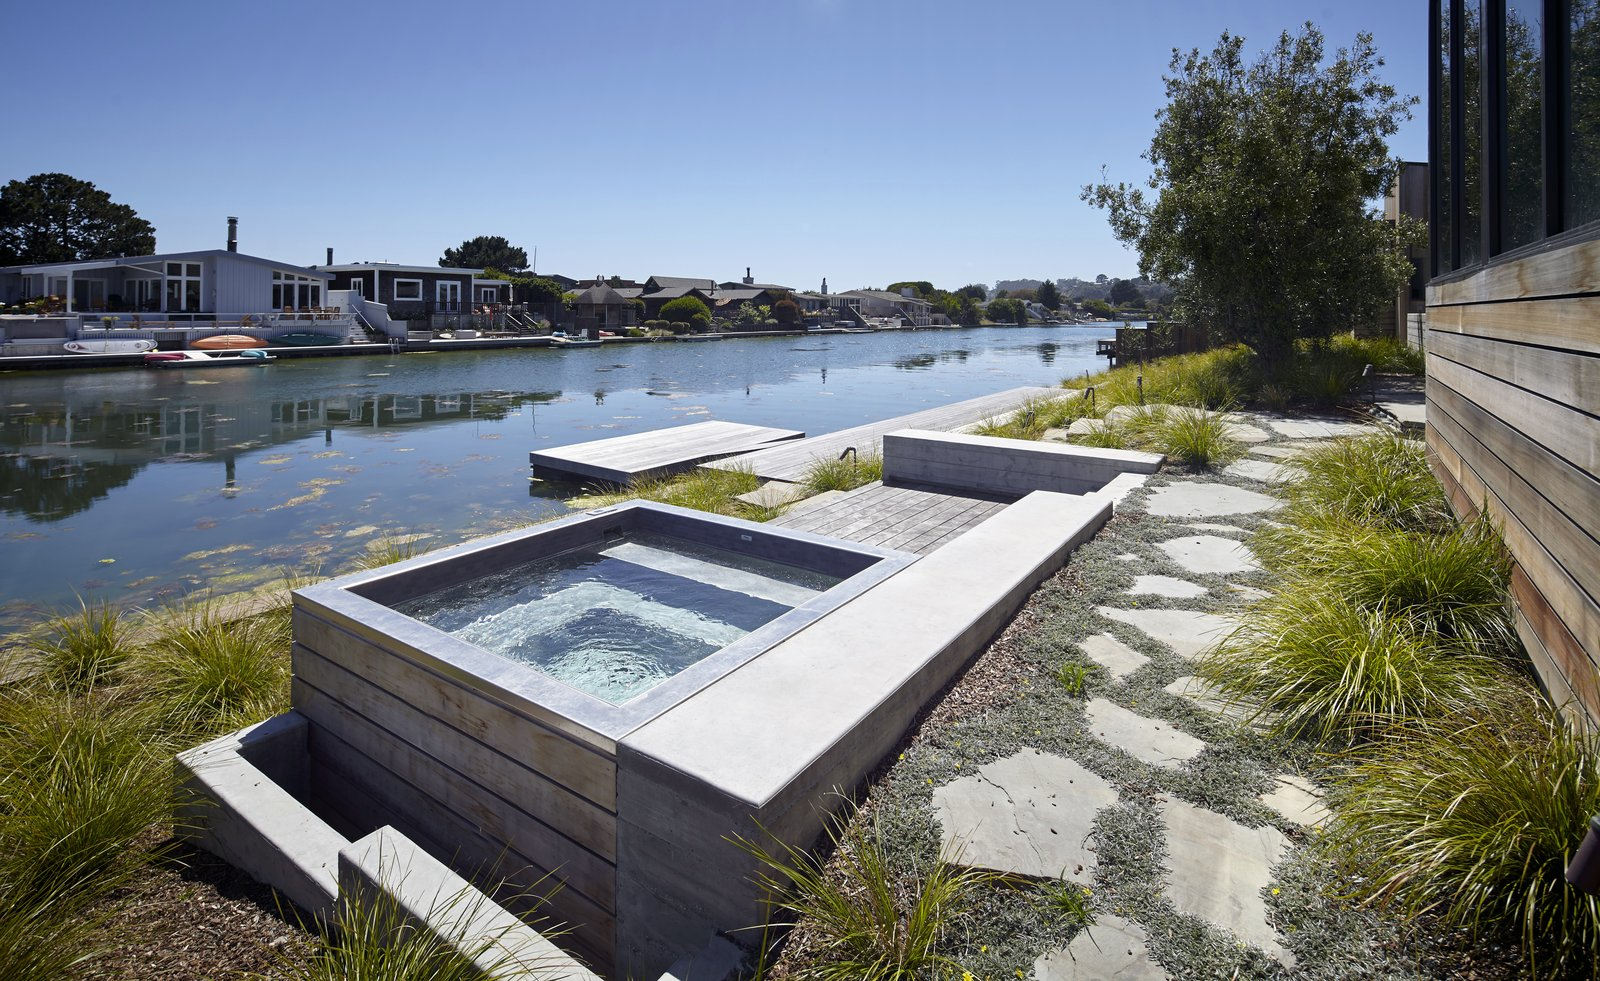 #TurnbullGriffinHaesloop #outdoor #landscape #hottub #lagoon #dock  Stinson Beach Lagoon Residence by Turnbull Griffin Haesloop Architects